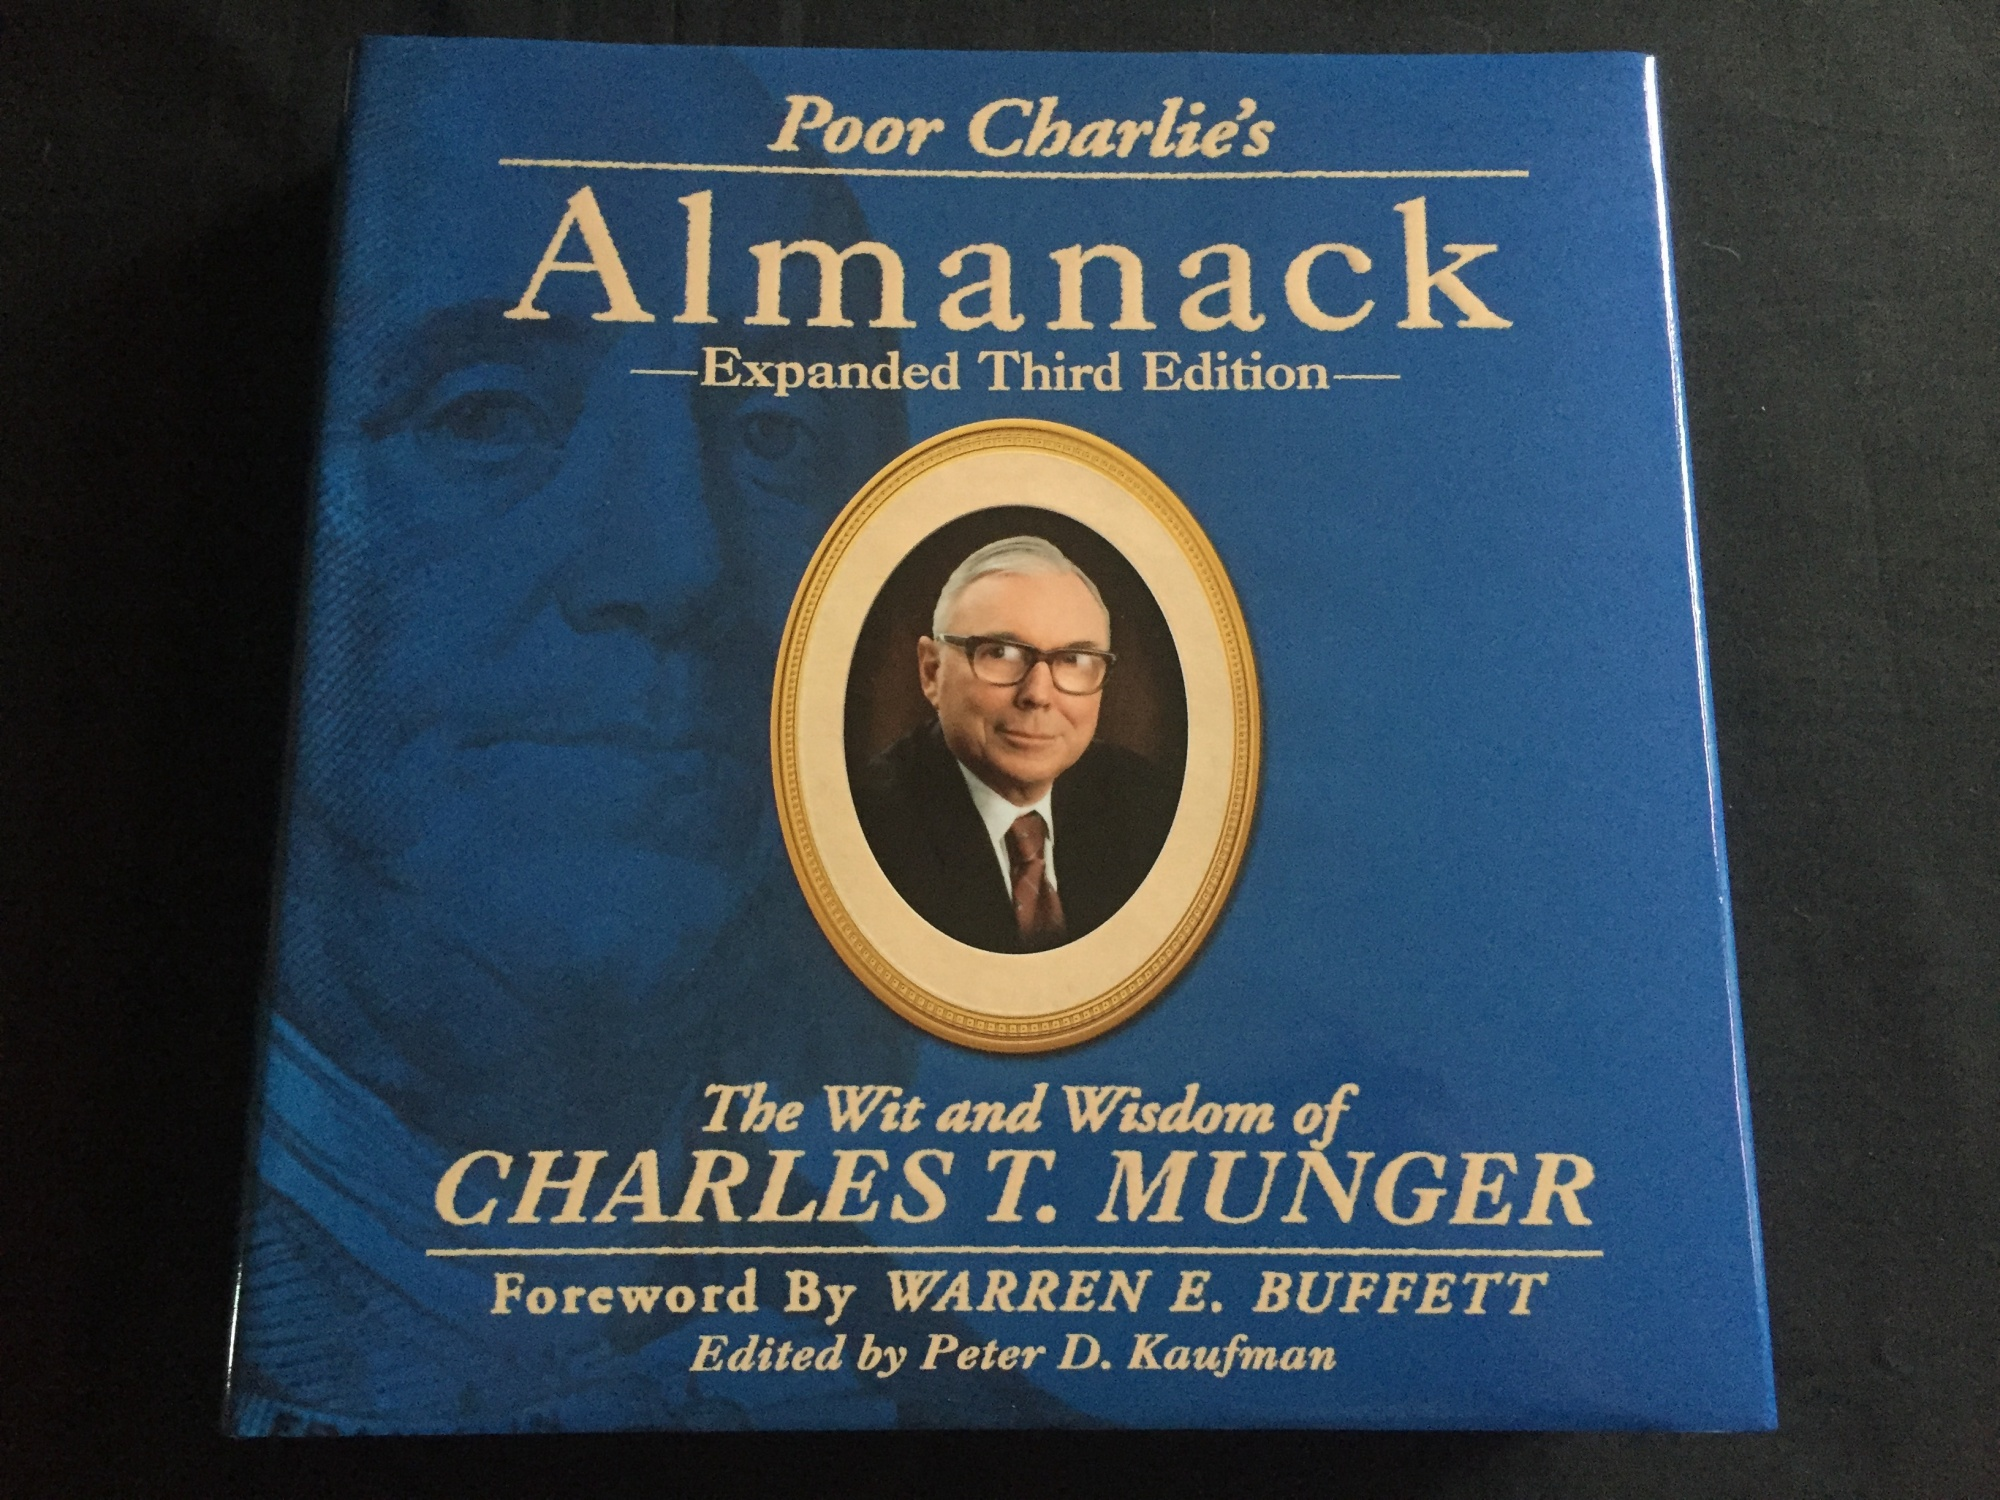 Poor Charlie's Almanack: The Wit and Wisdom of Charles T. Munger, Expanded Third Edition by Charles T. Munger, ISBN: 9781578645015